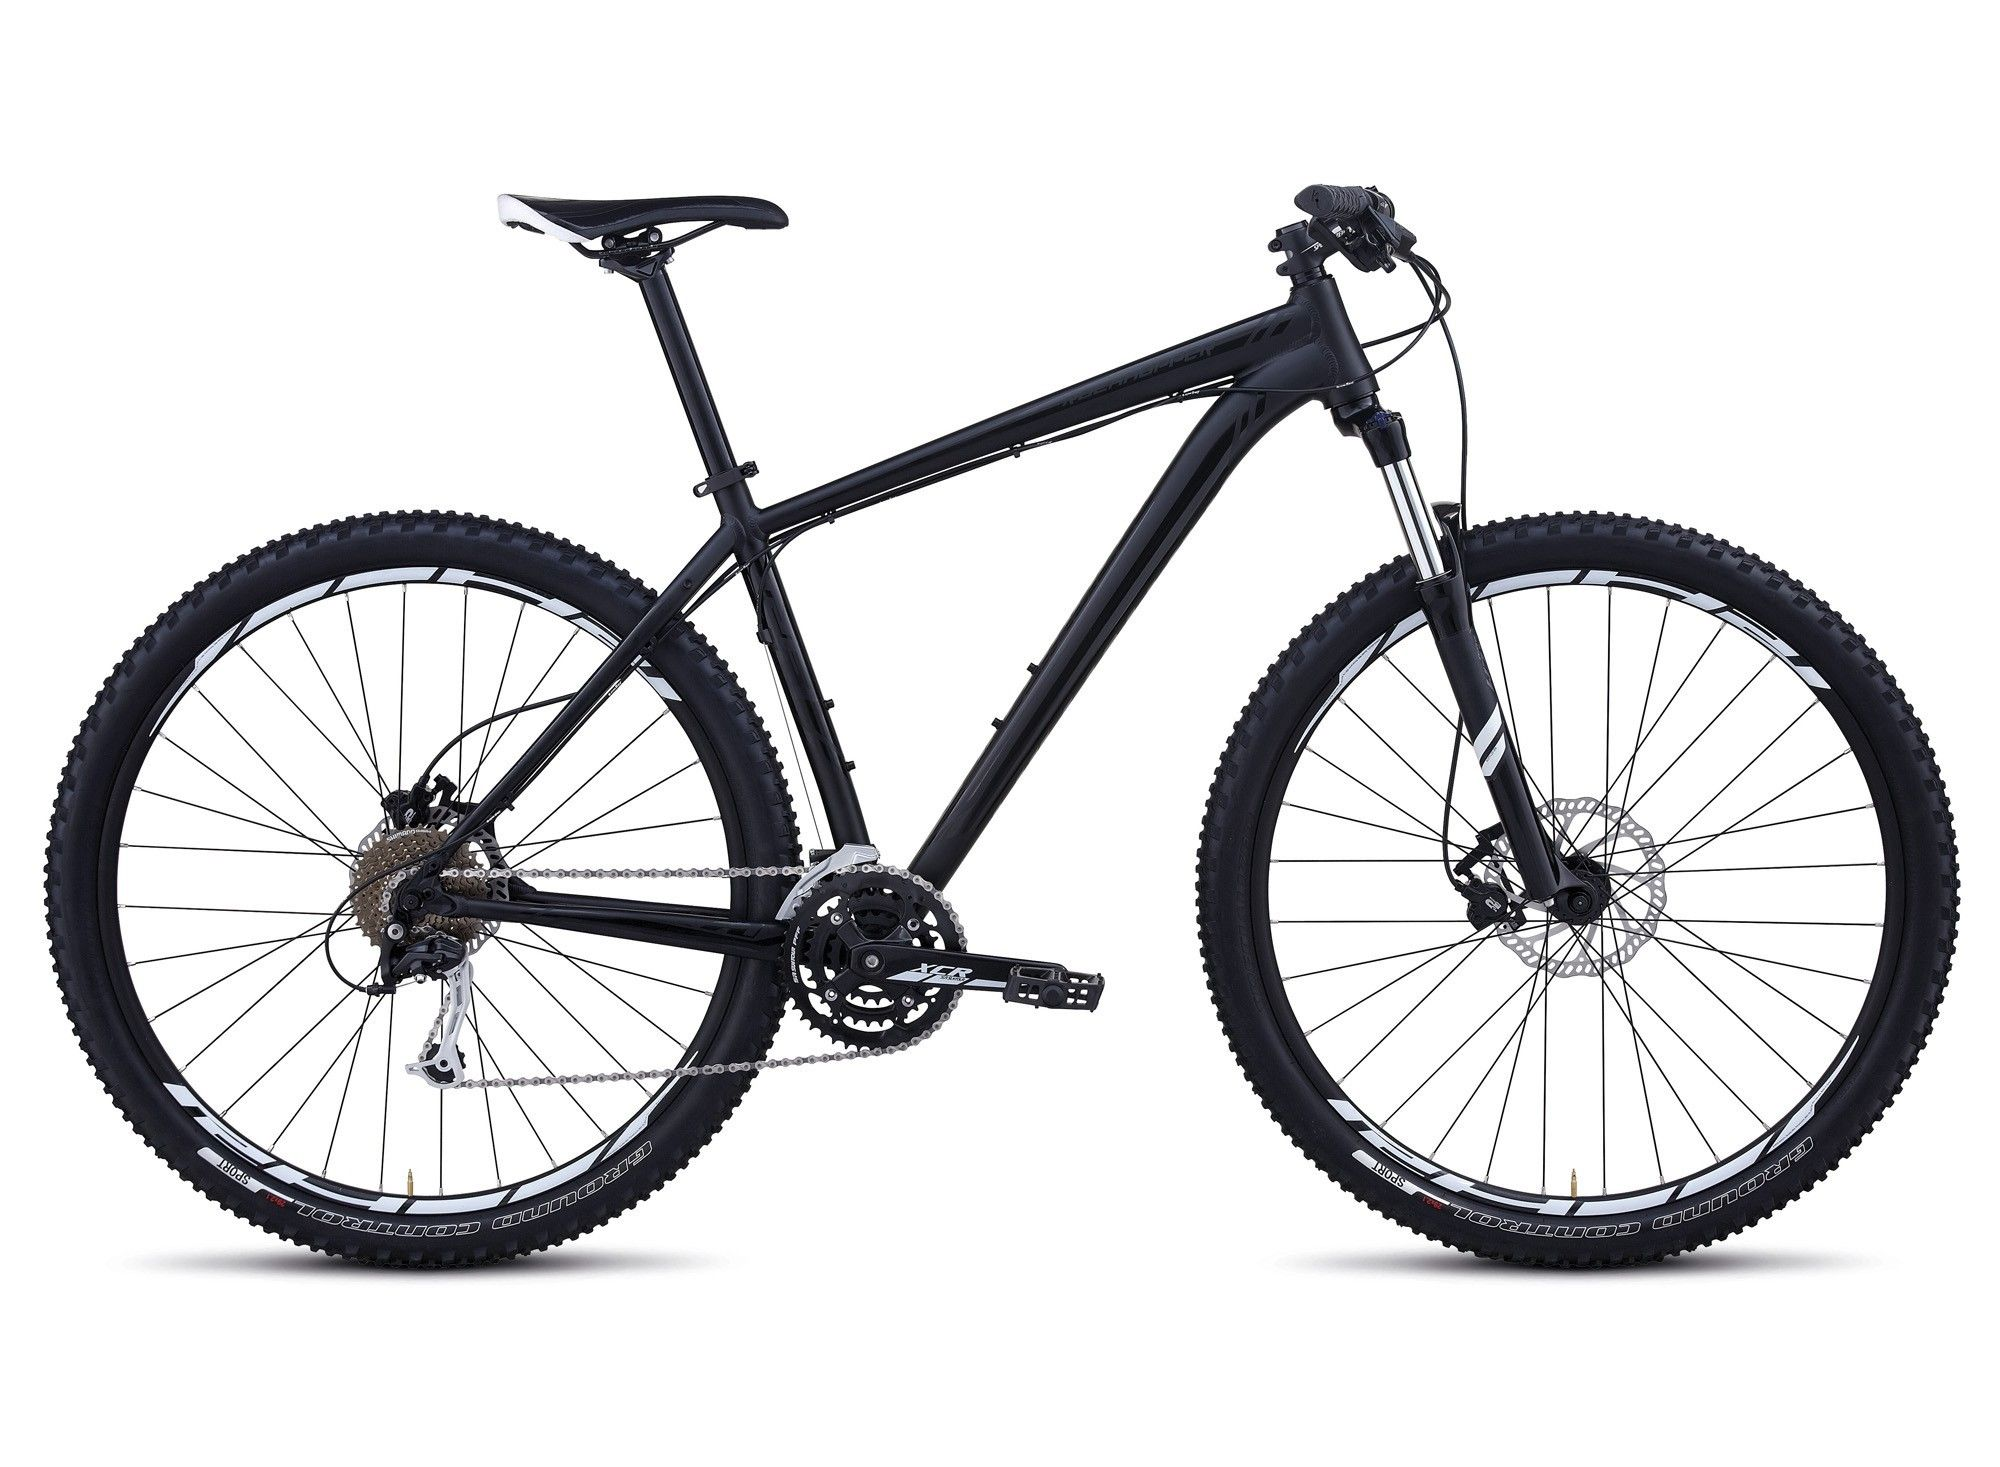 Specialized rockhopper 29 mtb